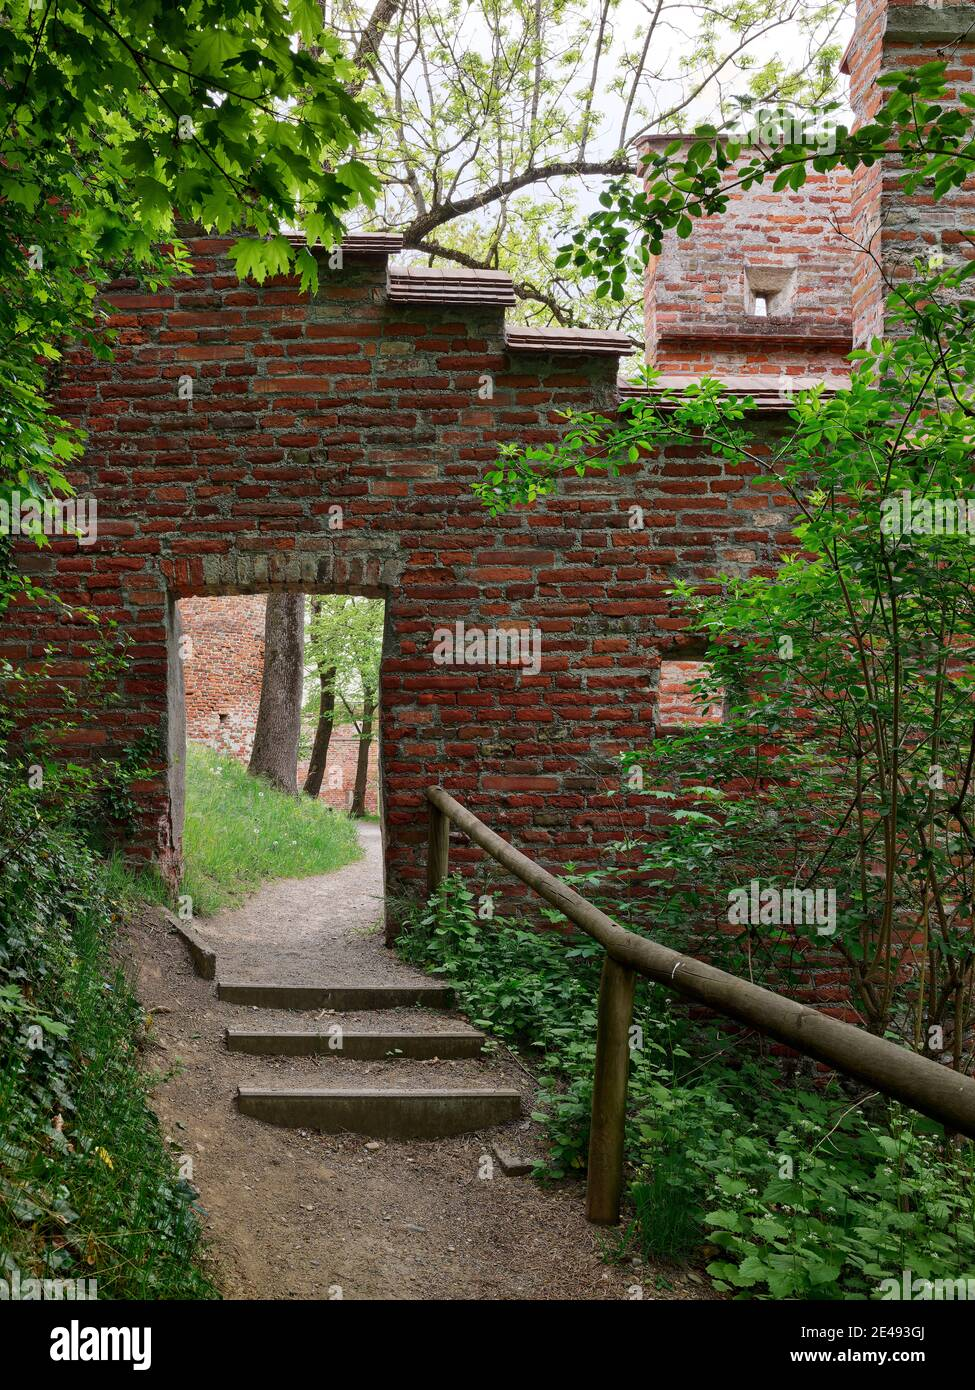 City wall, wall, brick wall, brick, path, gravel path, spring morning, old town, monument, place of interest, historic building, historic old town, listed Stock Photo